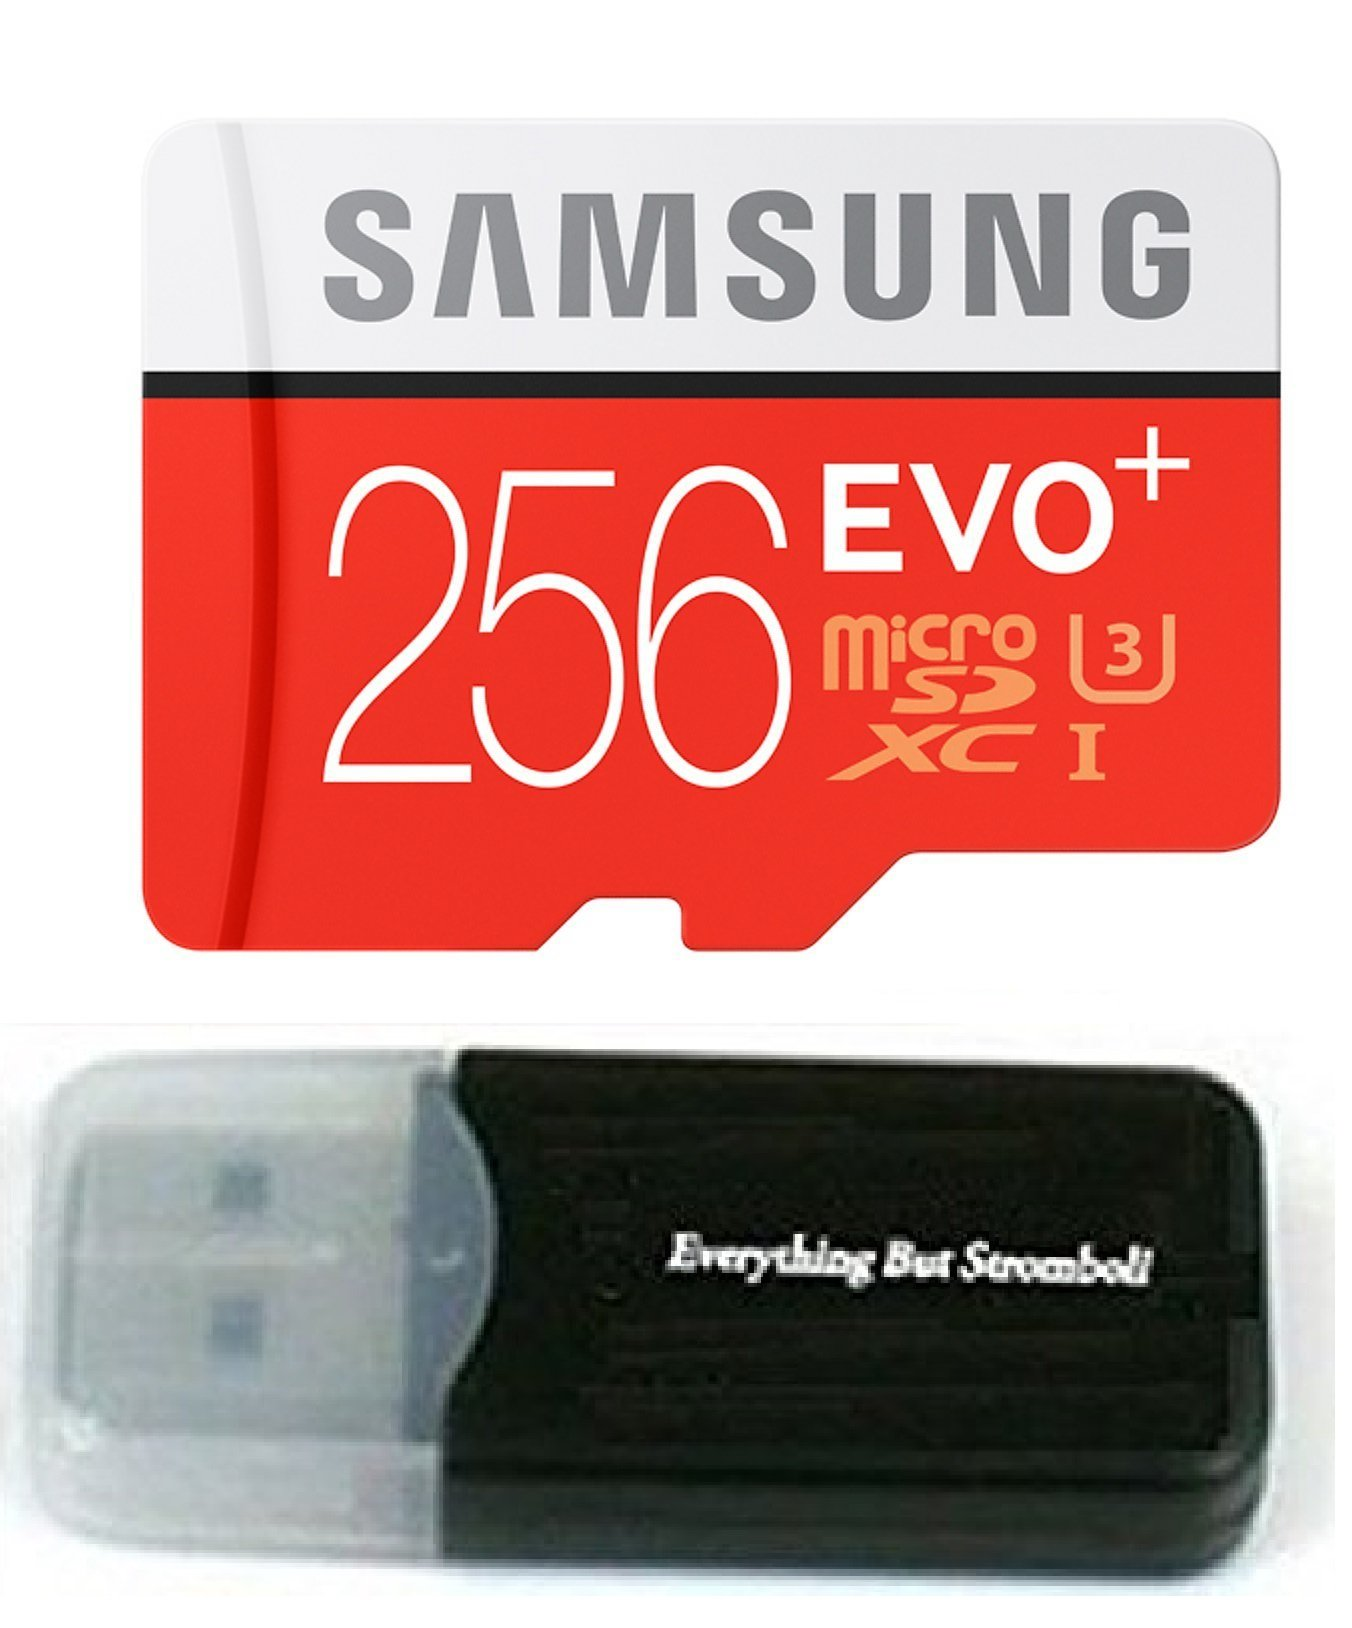 256GB Samsung Evo Plus Micro SD XC Class 10 UHS-1 256G Memory Card for Samsung Galaxy S8, S8+, Note 8, S7, S7 Edge Cell Phone with Everything But Stromboli Card Reader (MB-MC256DA/AM)